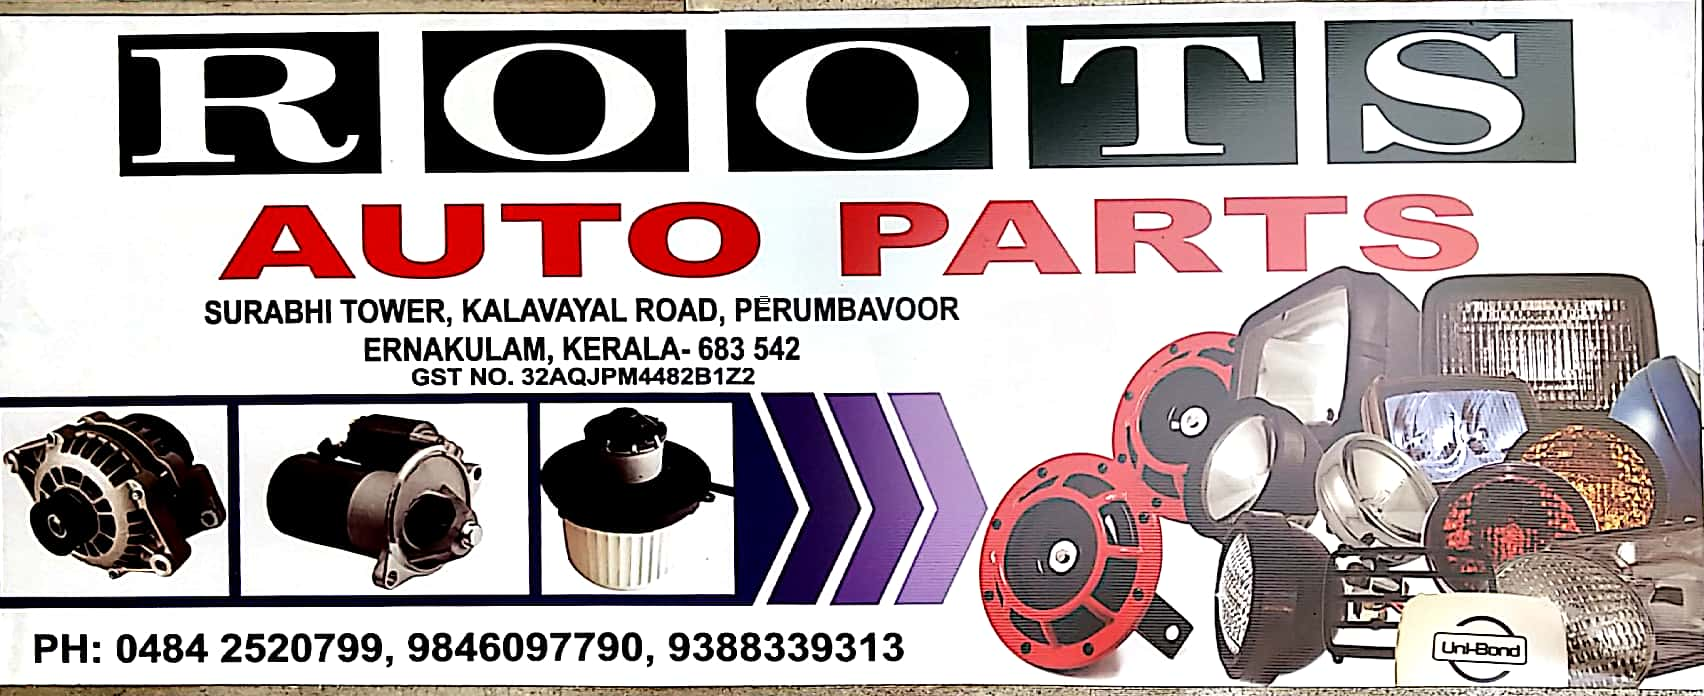 ROOTS AUTO PARTS, LUBES AND SPARE PARTS,  service in Perumbavoor, Ernakulam